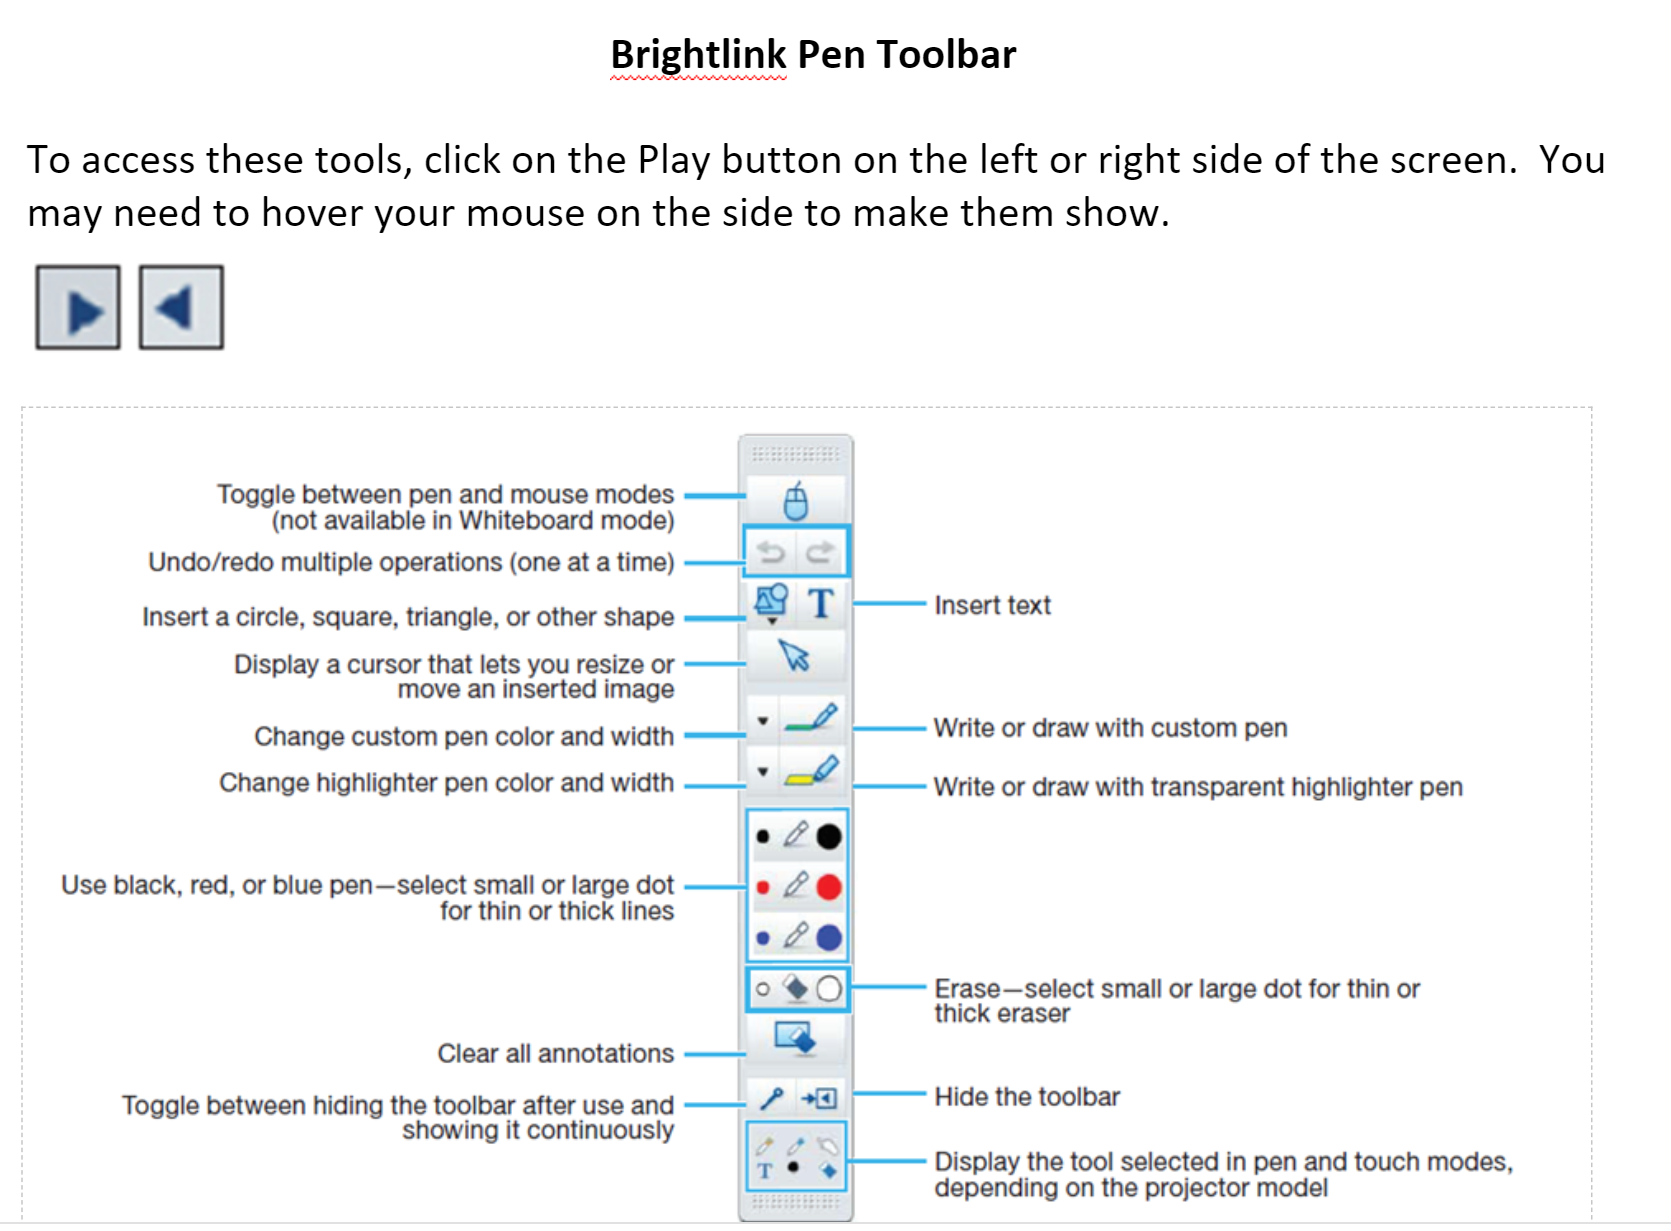 Brightlink Toolbar